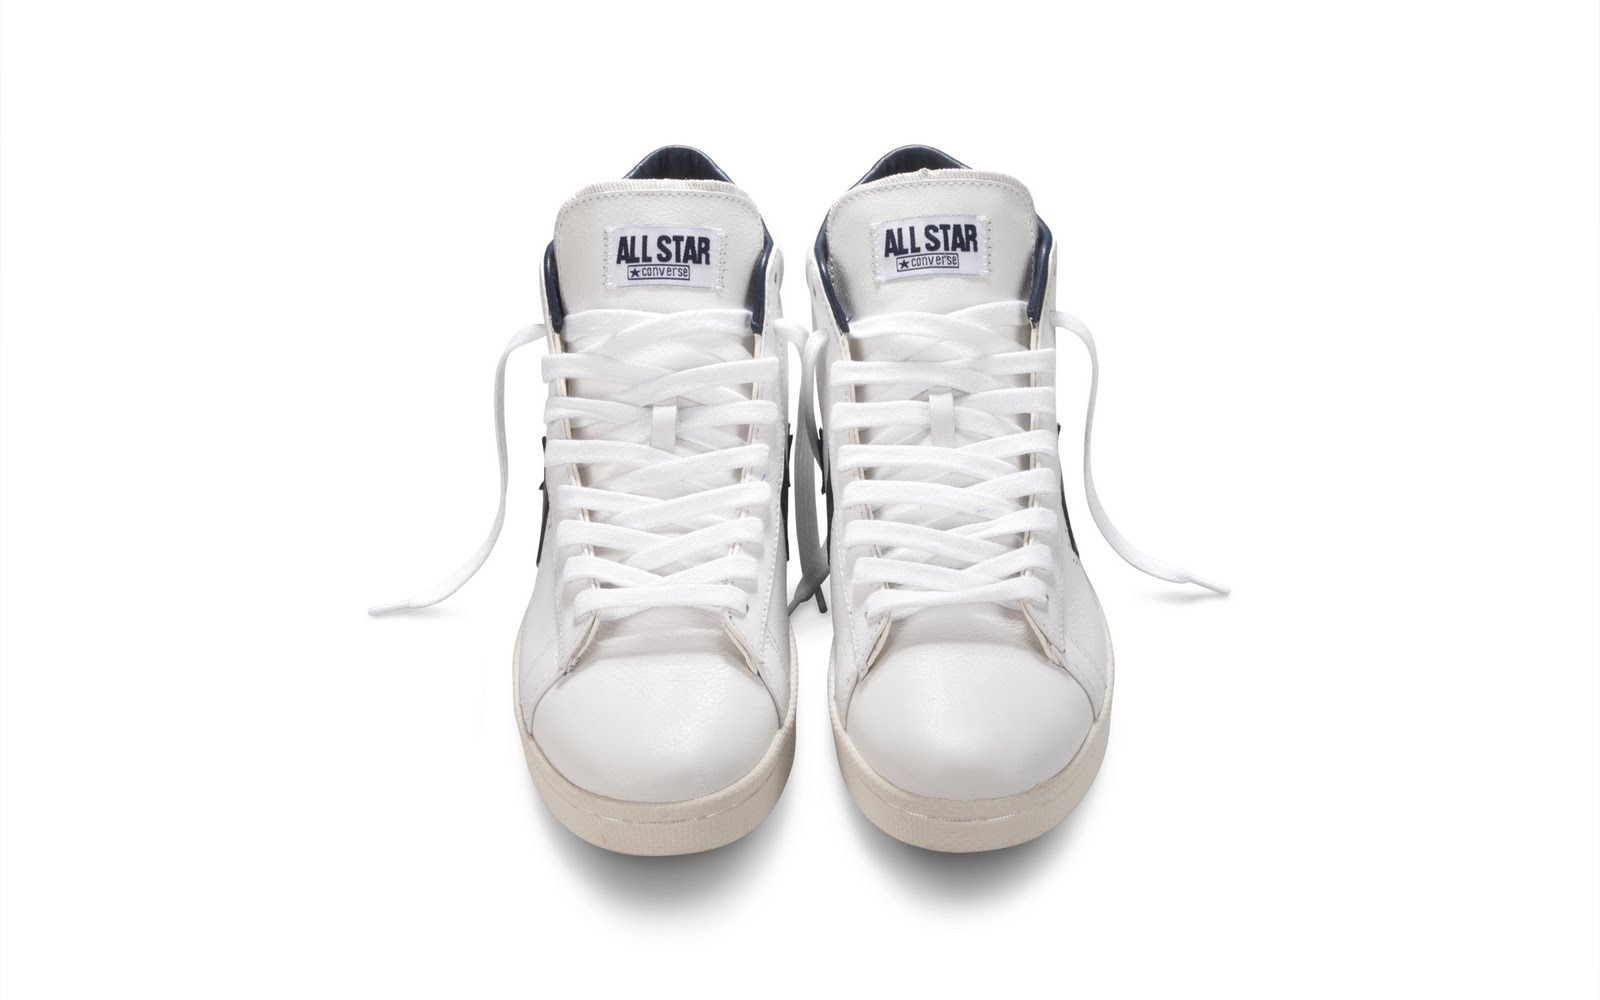 b63688686c89a3 Only 168 of the white navy version will be available